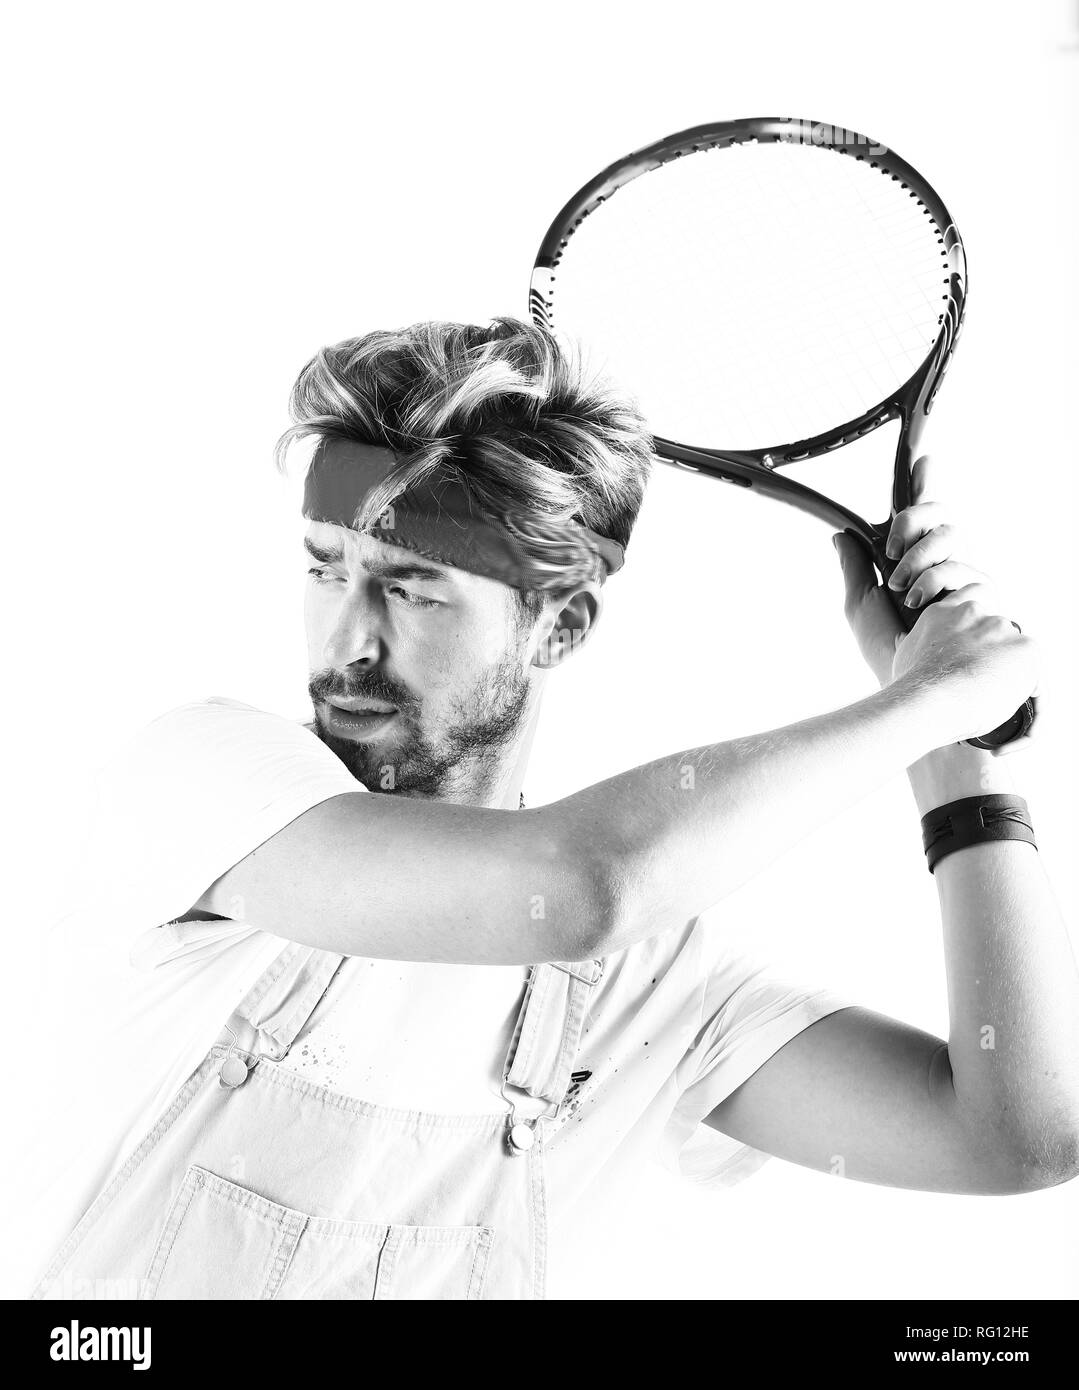 Male tennis player with racket in action. - Stock Image